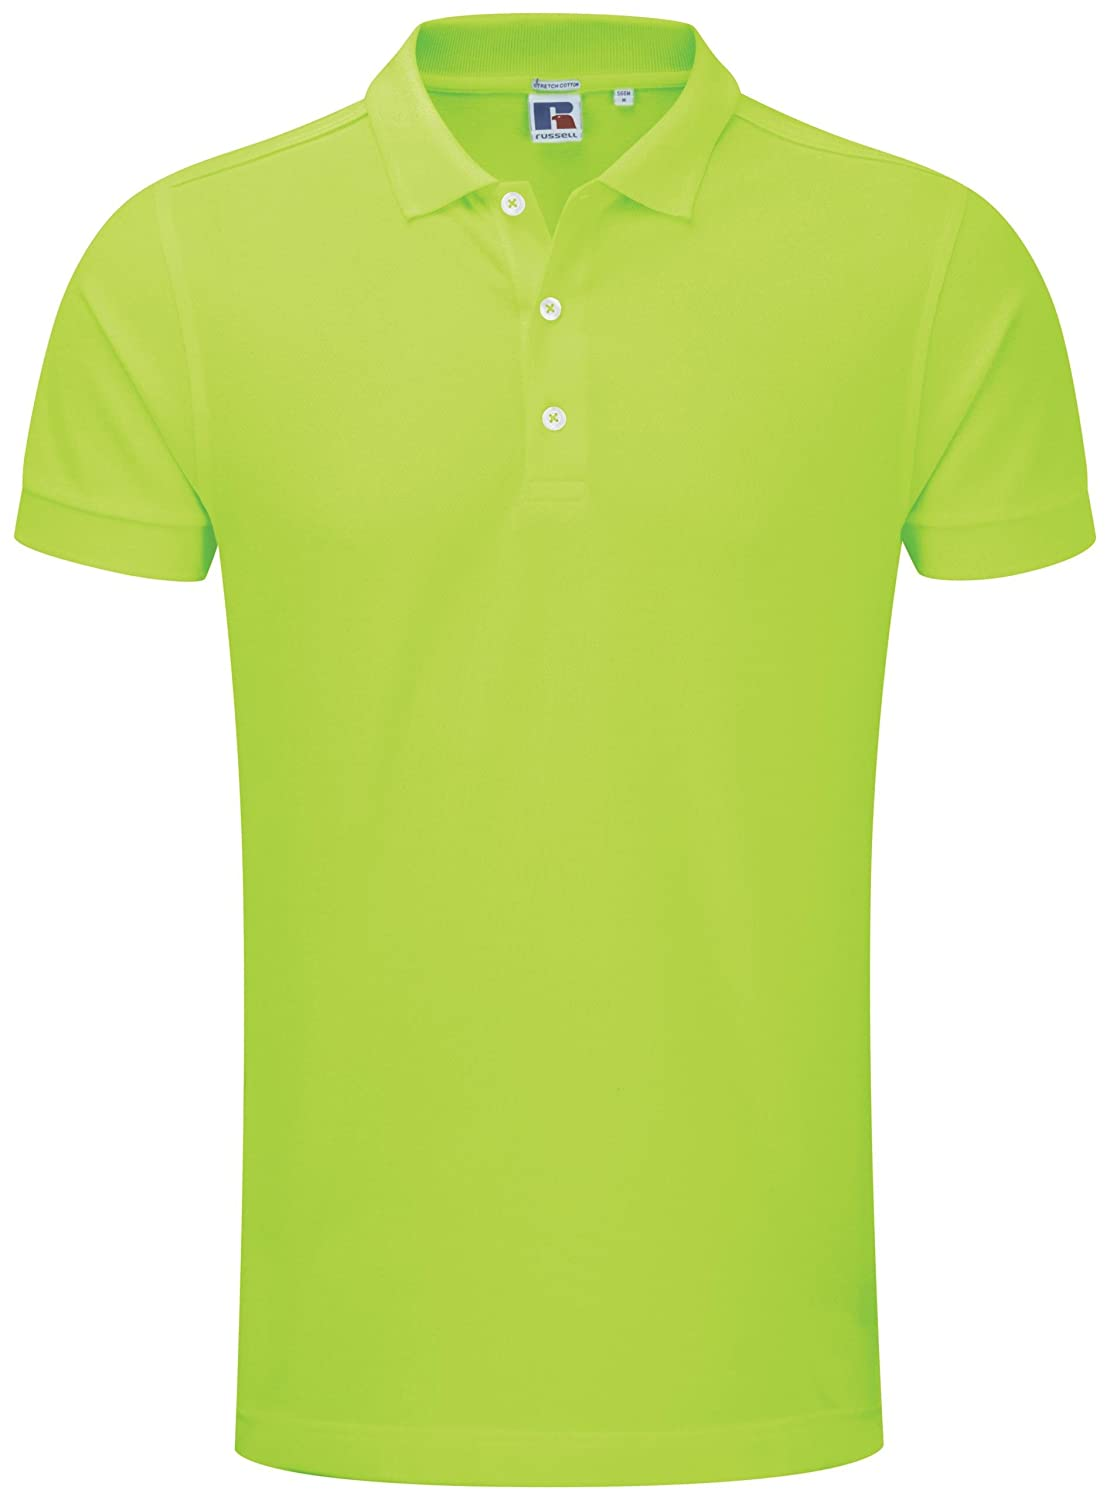 Men's Russell Stretch Polo Slim Fit Button Plack